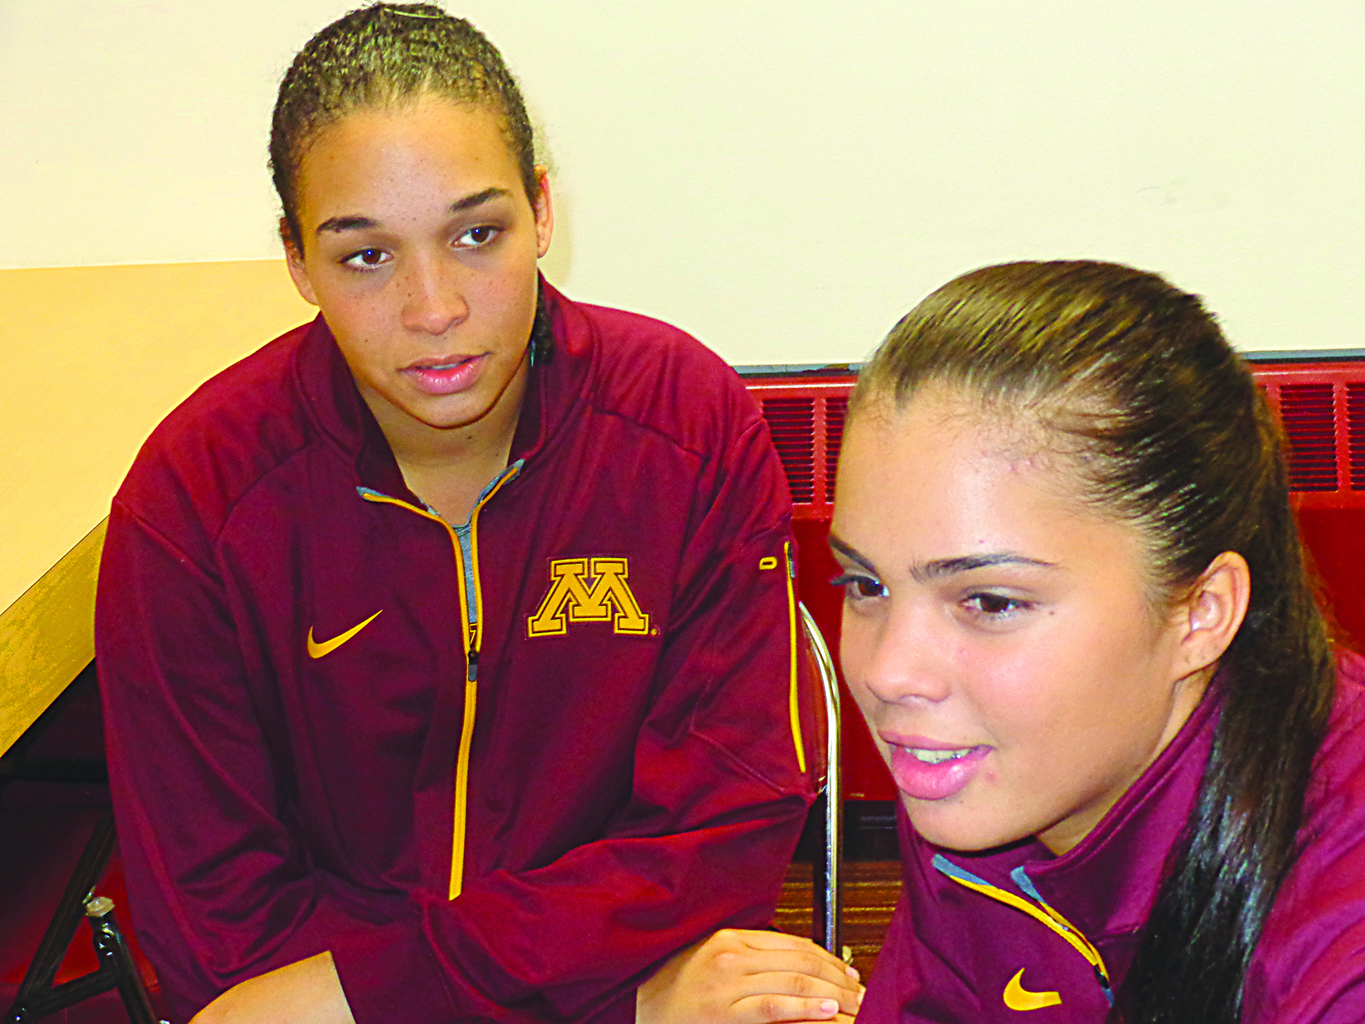 Daly Santana, left, and Dalianliz Rosado